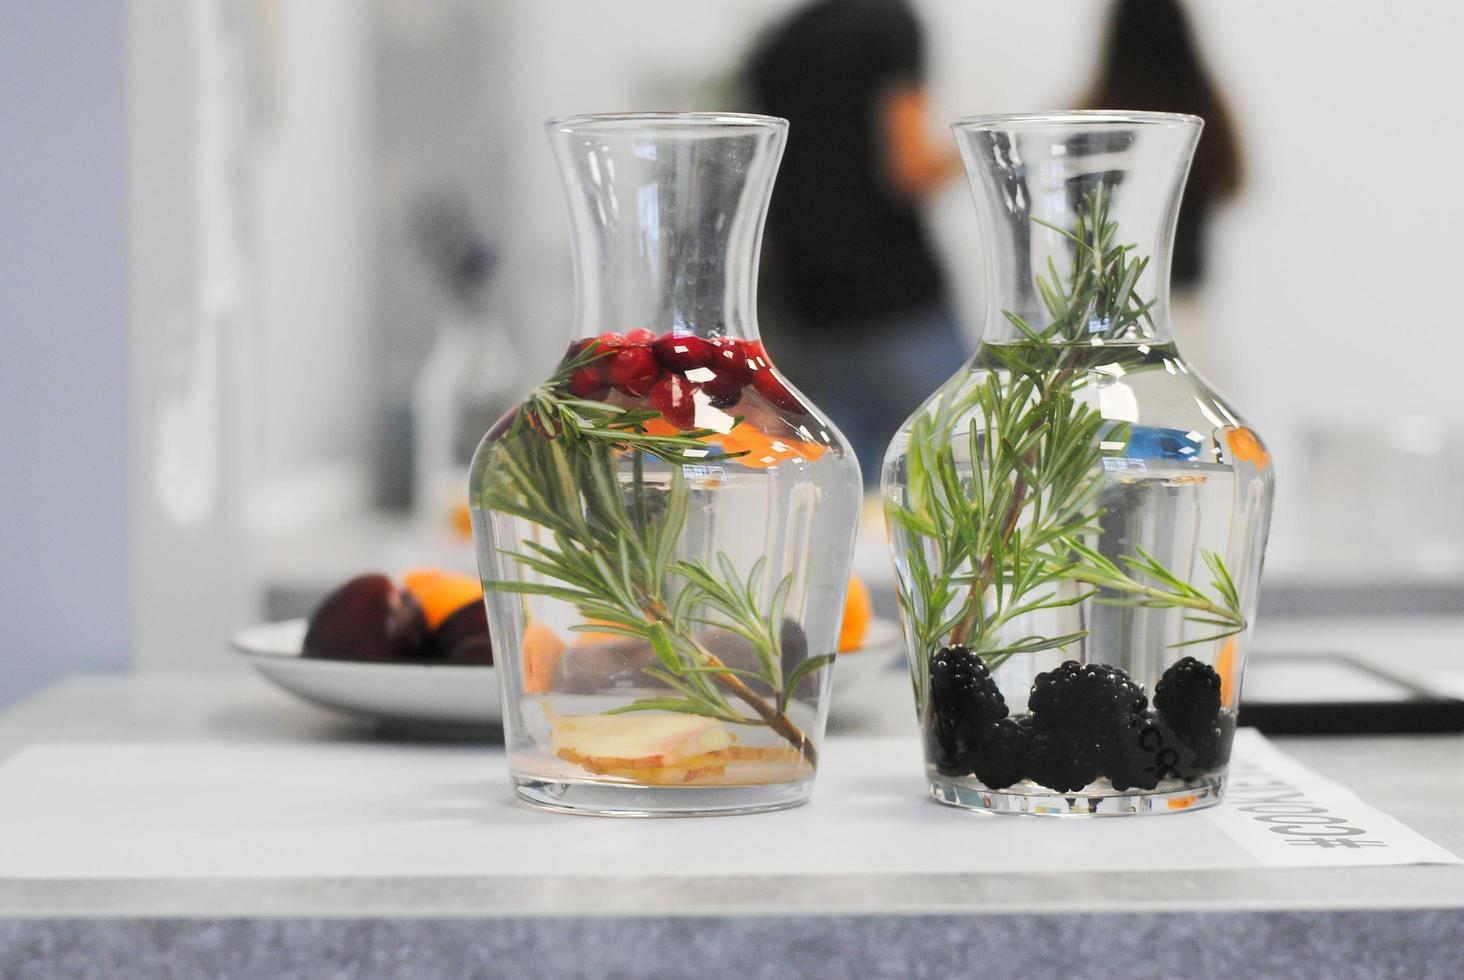 Vases with rosemary and fruit photo